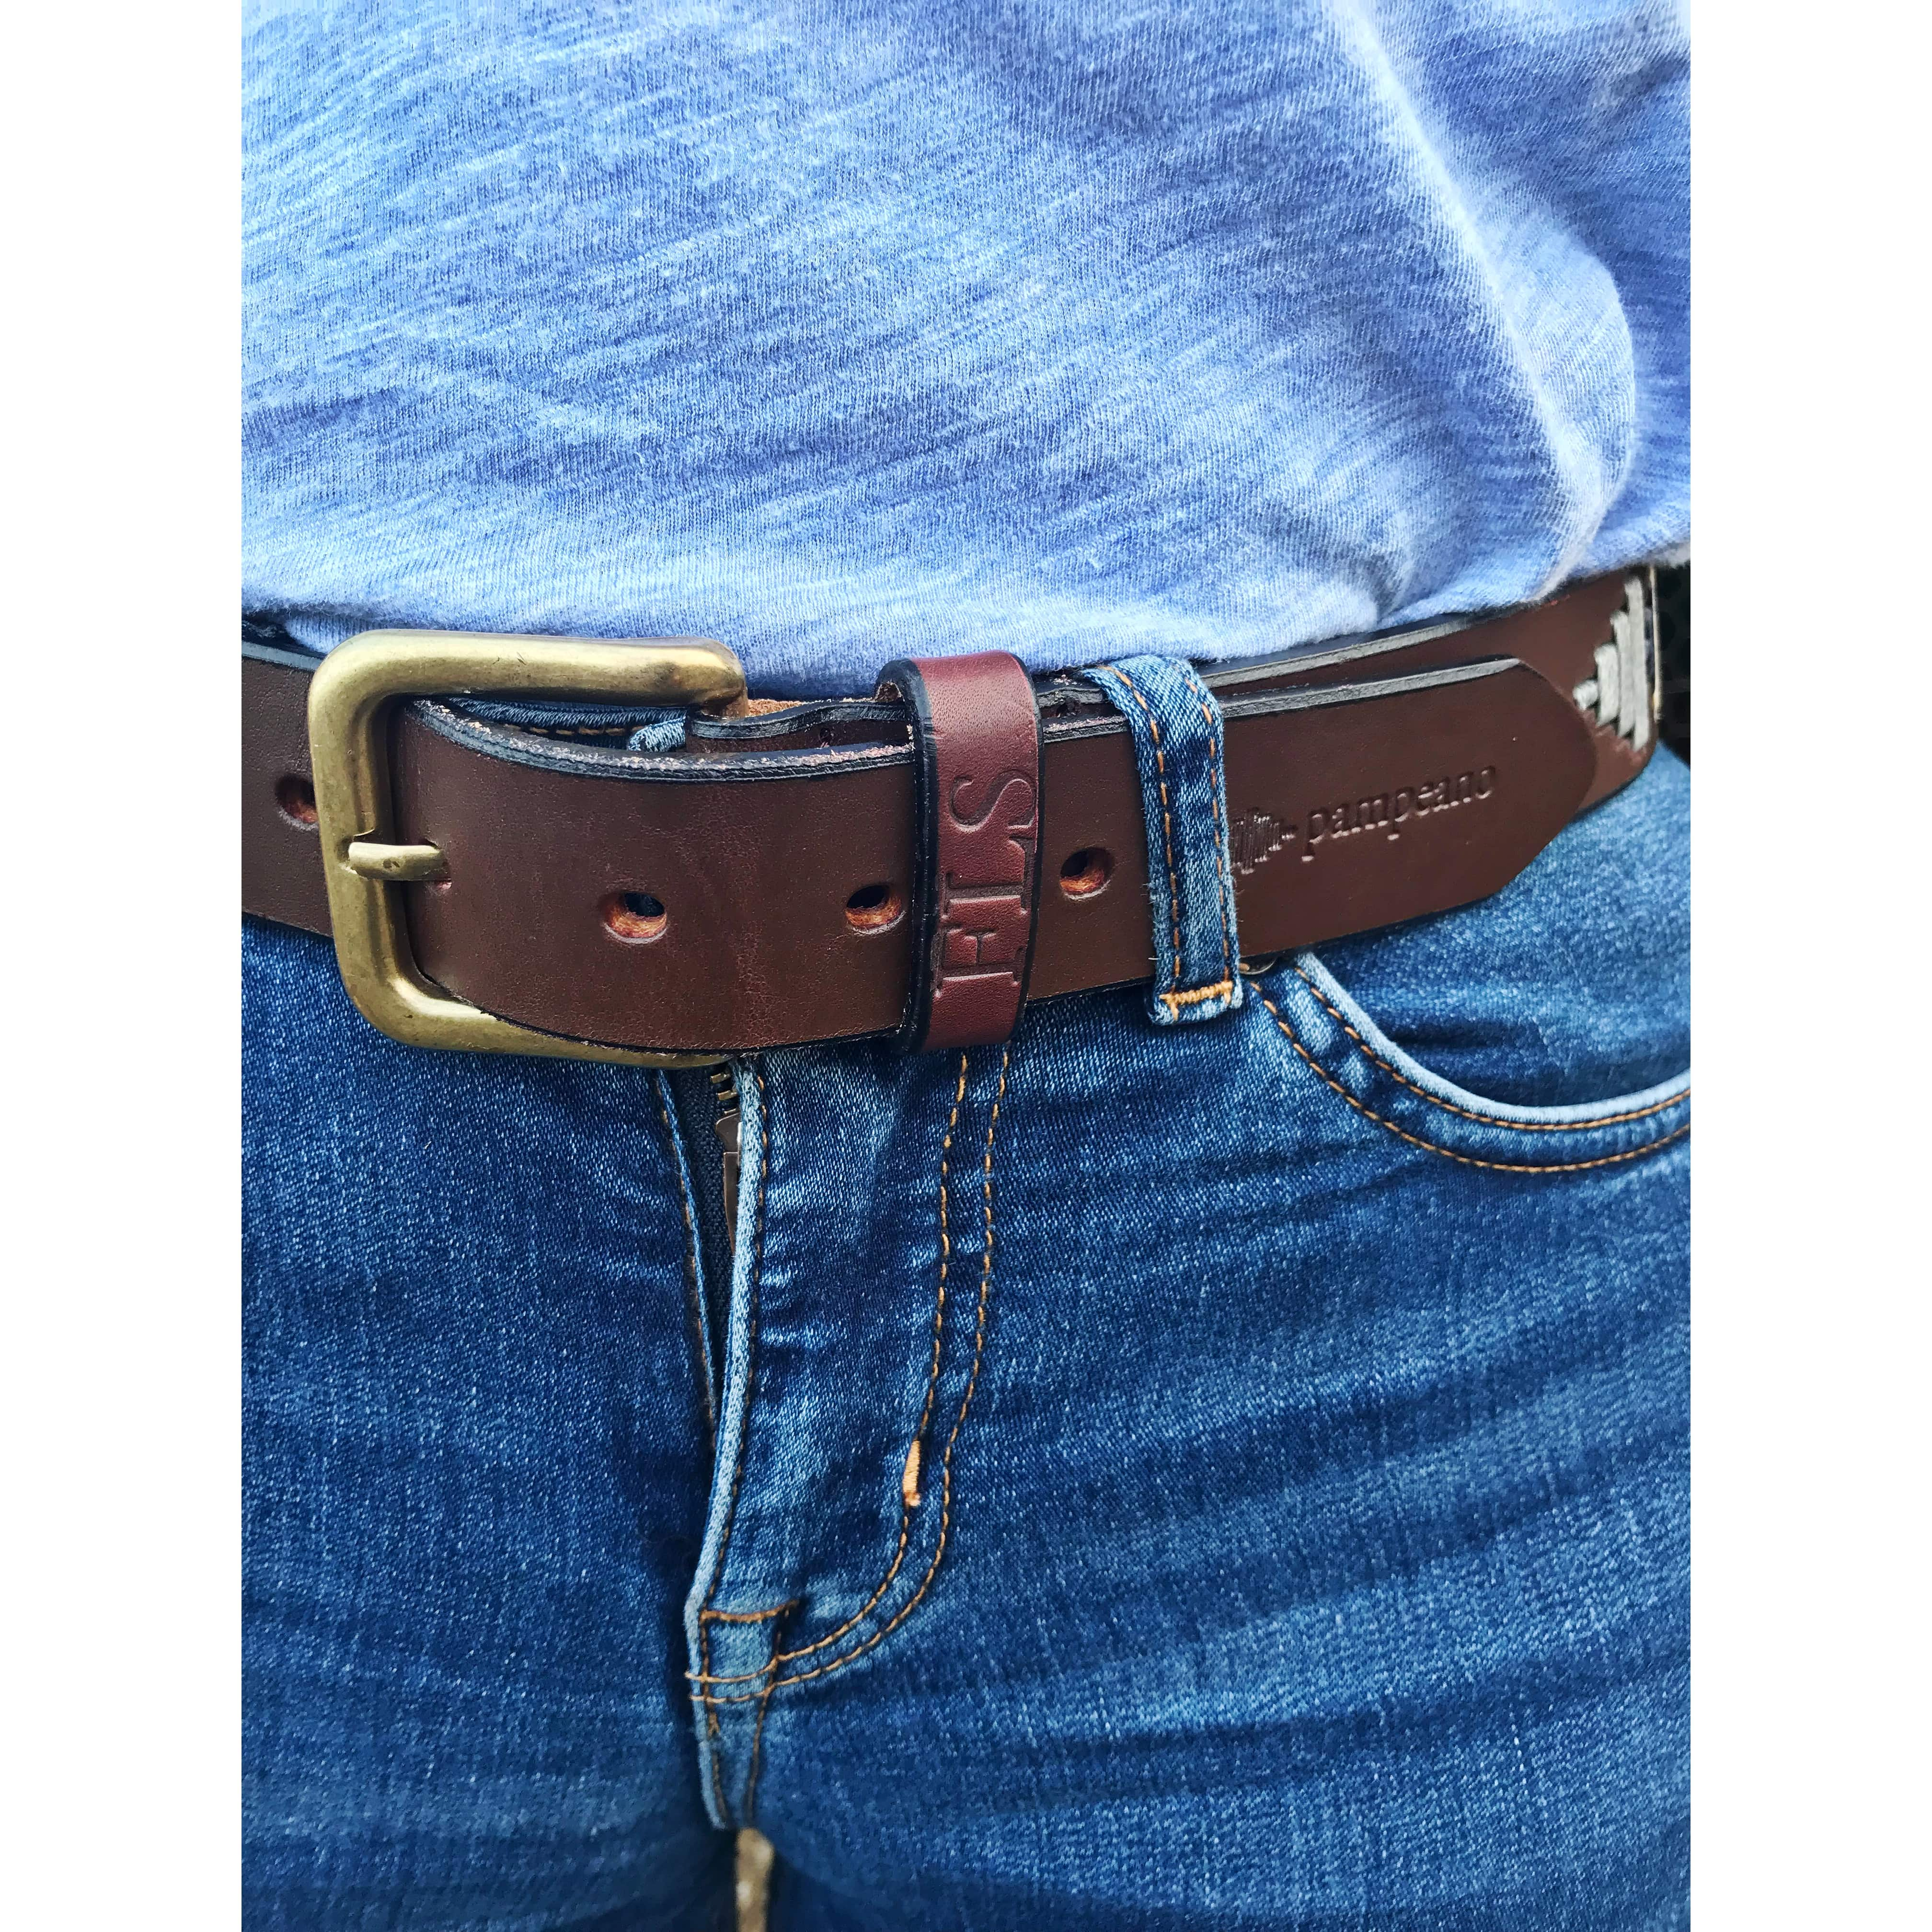 1183b5c9a0 What are my thoughts on the 'Tornado' polo belt?